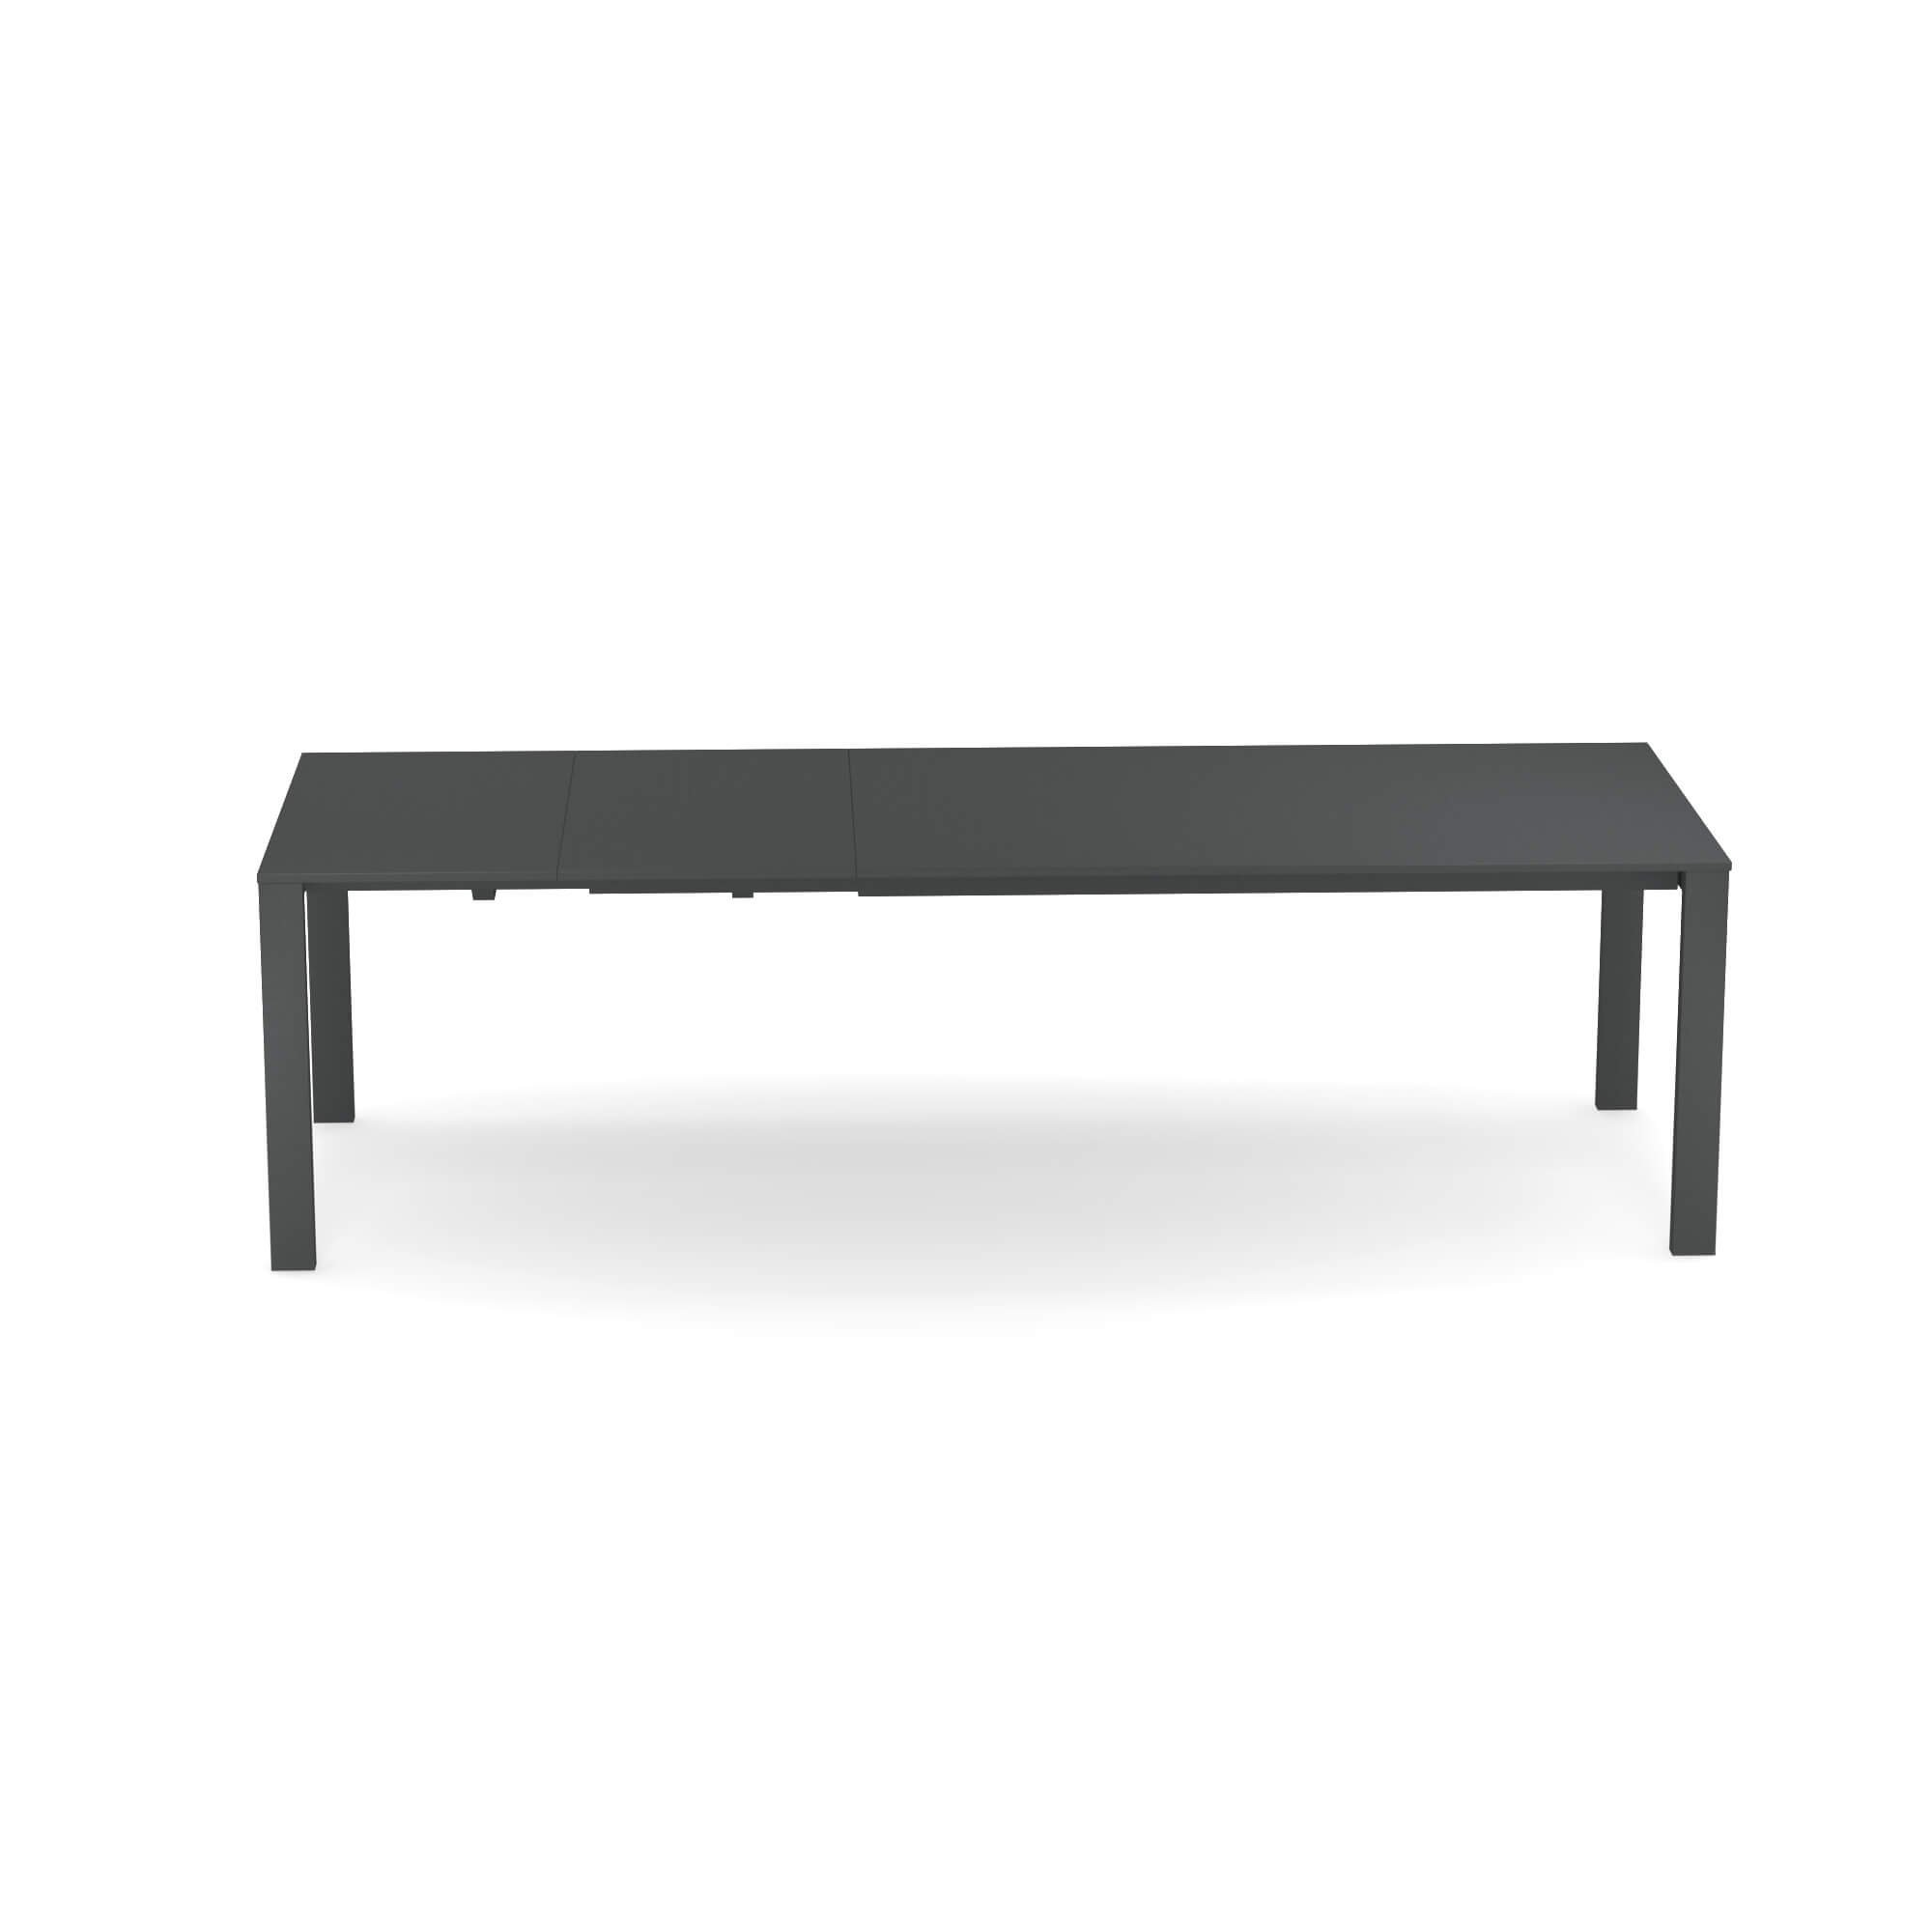 Round Extensible Table dining from Emu, designed by Christophe Pillet